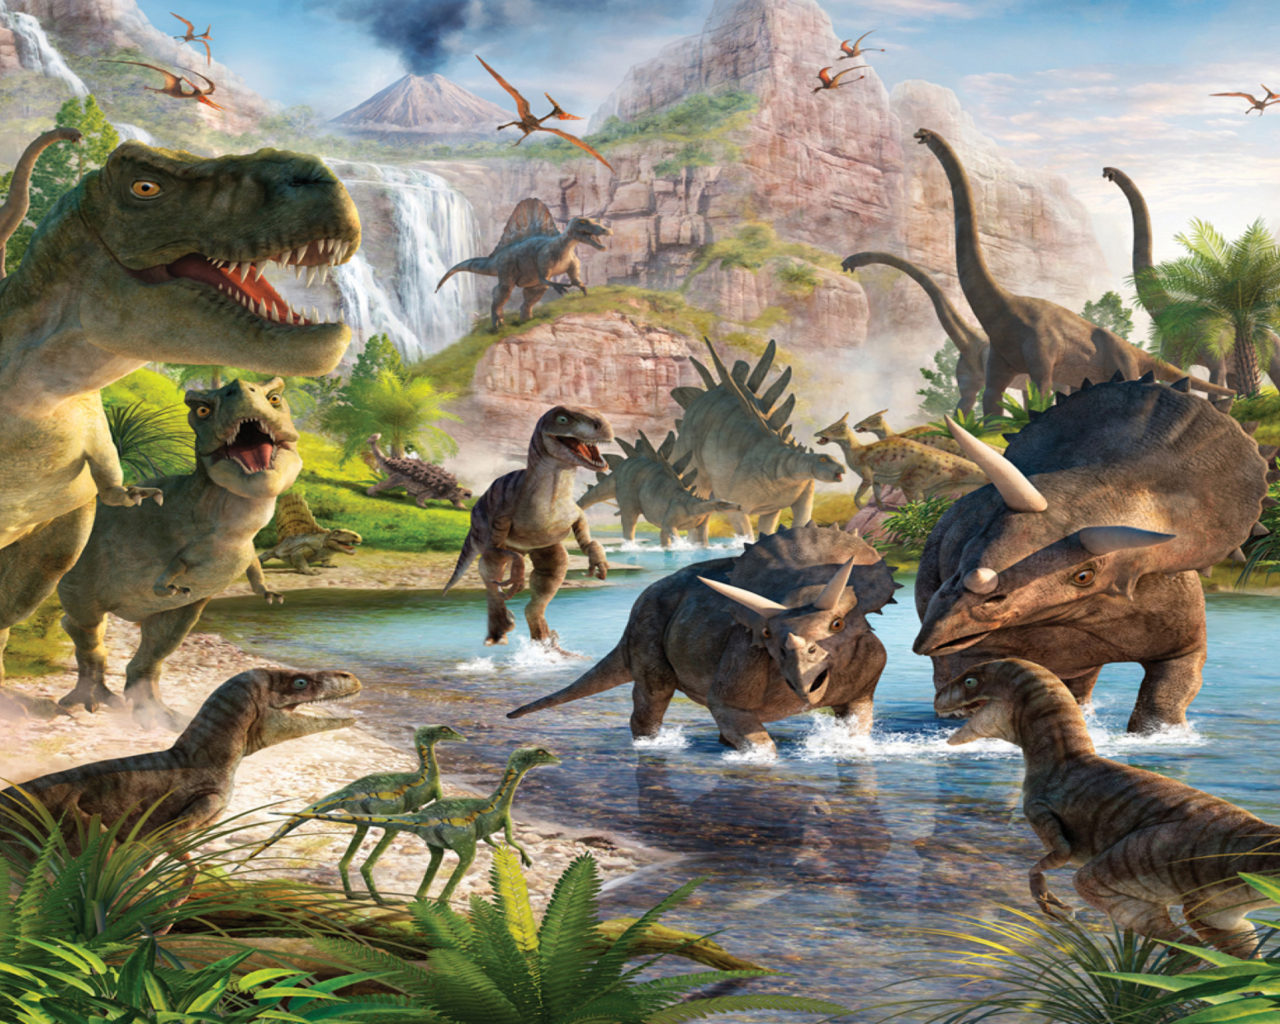 Download New 3d Wallpapers For Pc Dinosaurs Wallpapers For Desktop 11686 Full Hd Wallpaper